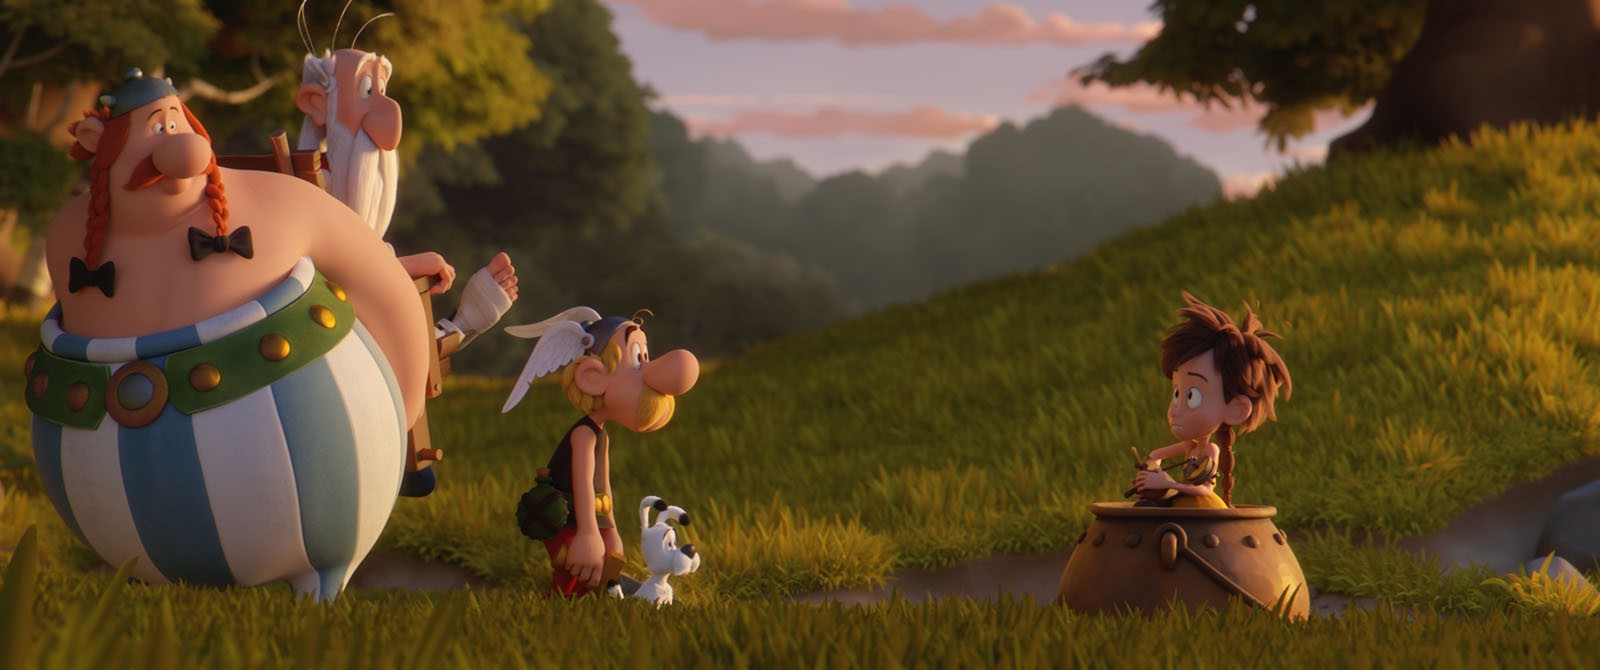 asterix the secret of the magic potion watch online free